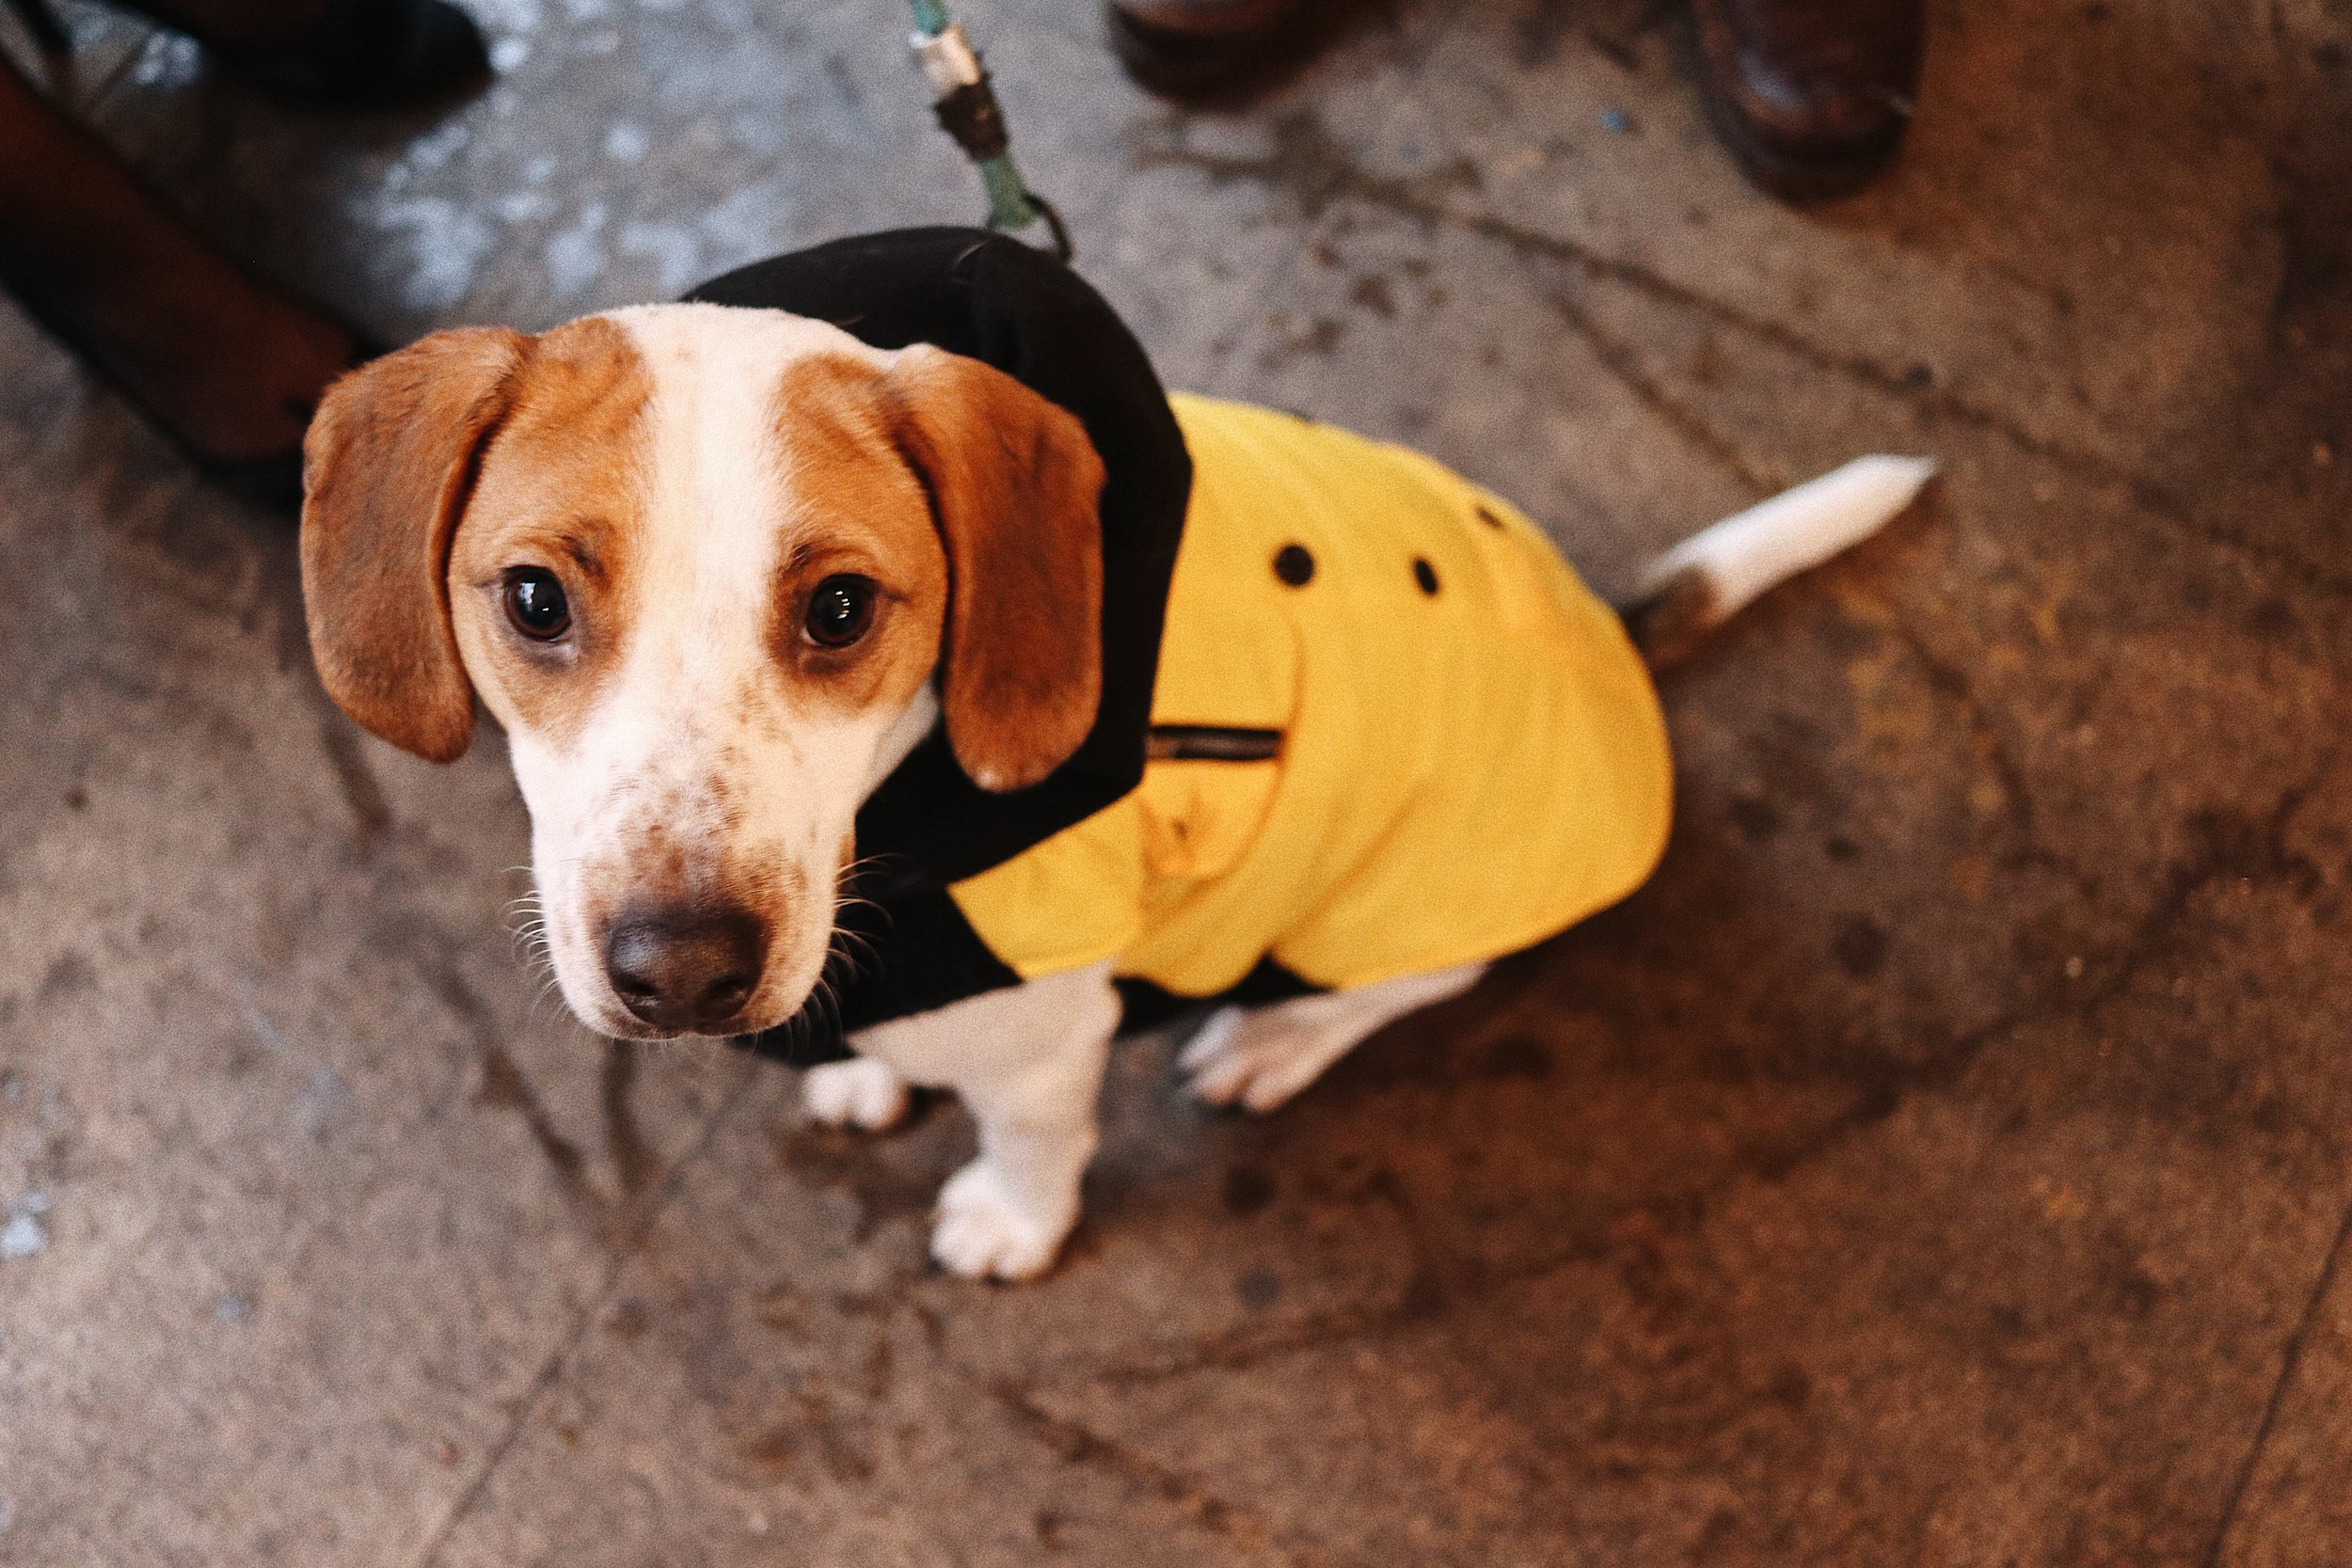 we are very dog friendly - Looking for places to eat with your dog? They can come along with or without awesome coat!